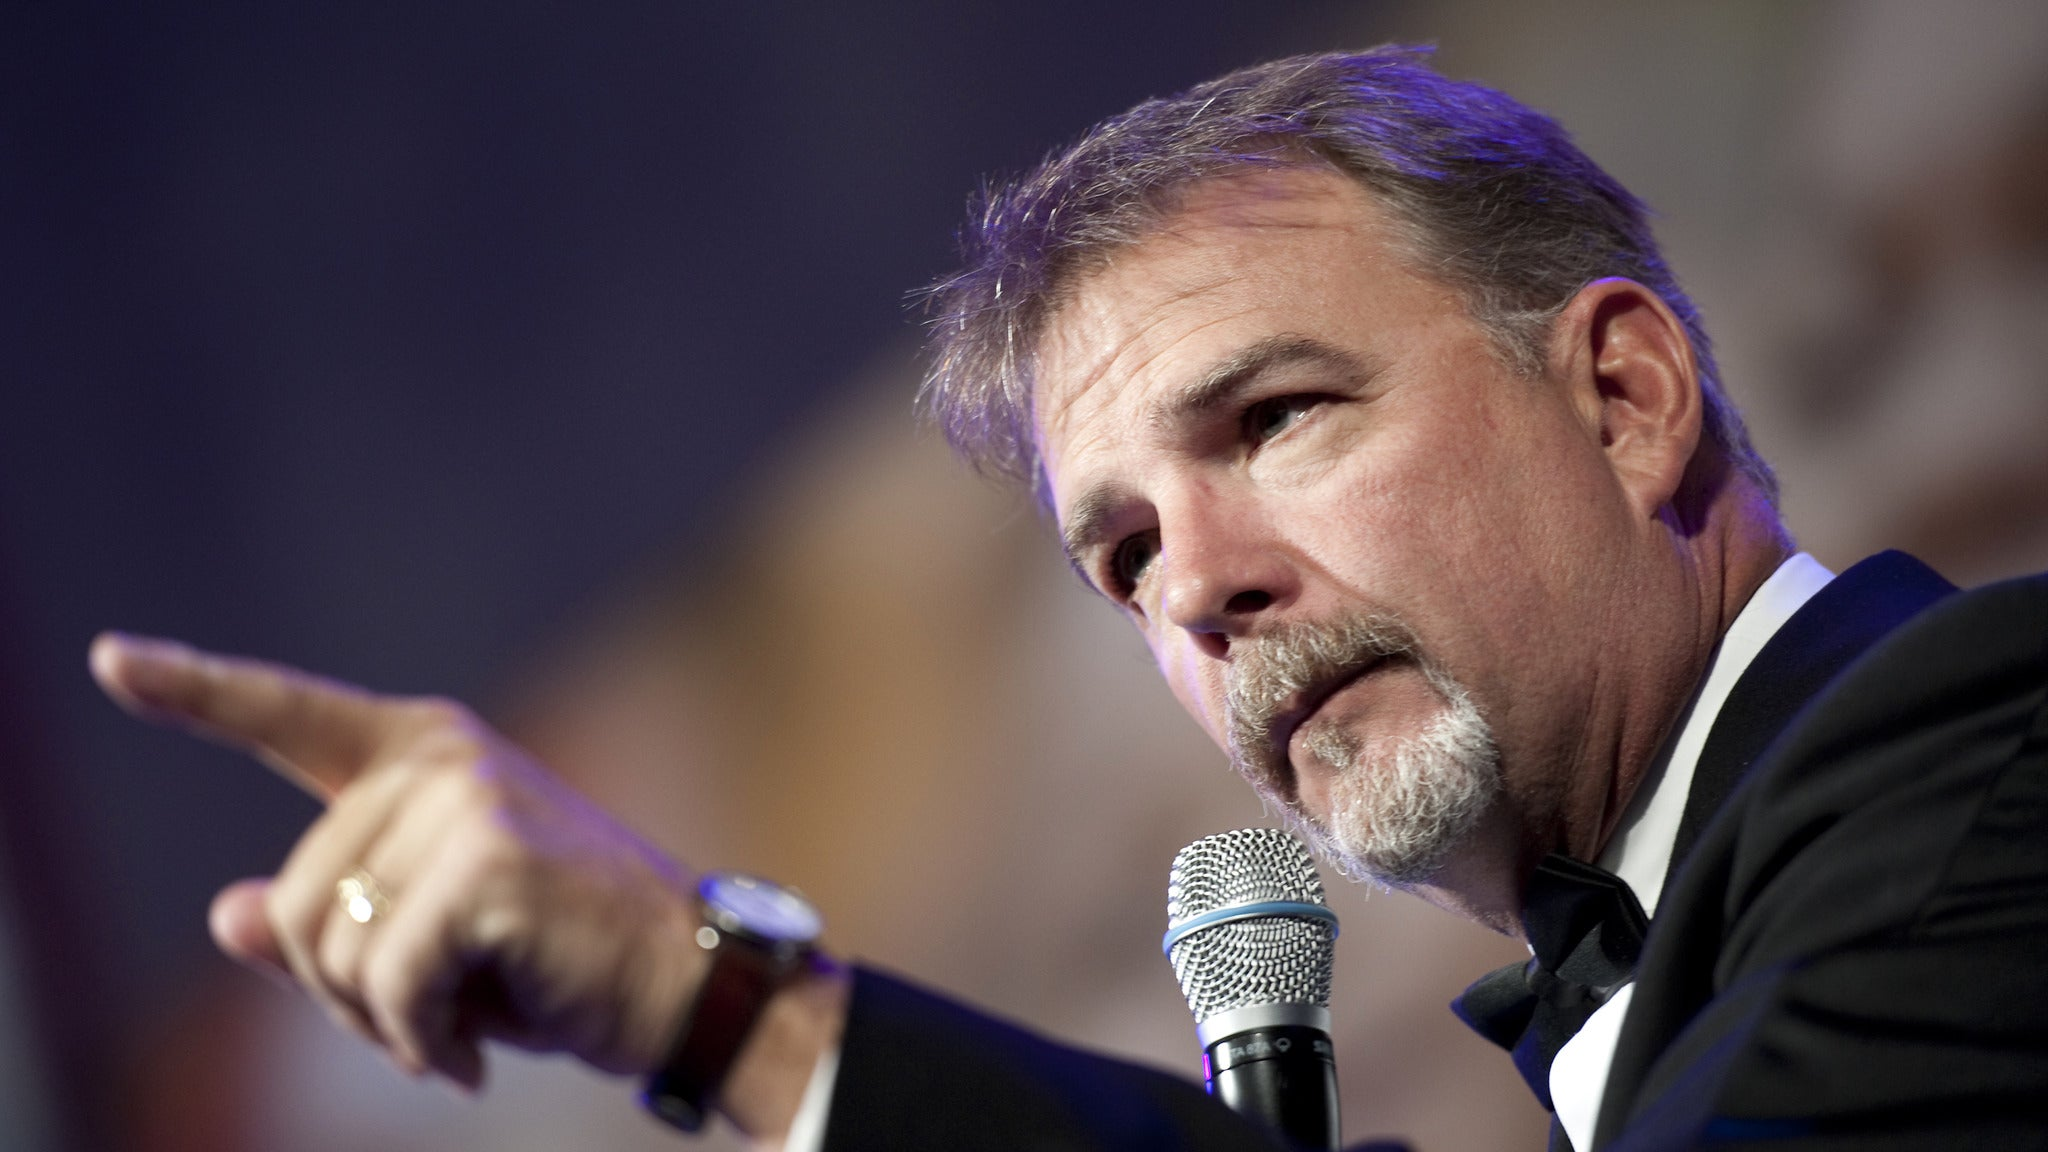 Bill Engvall at Cerritos Center